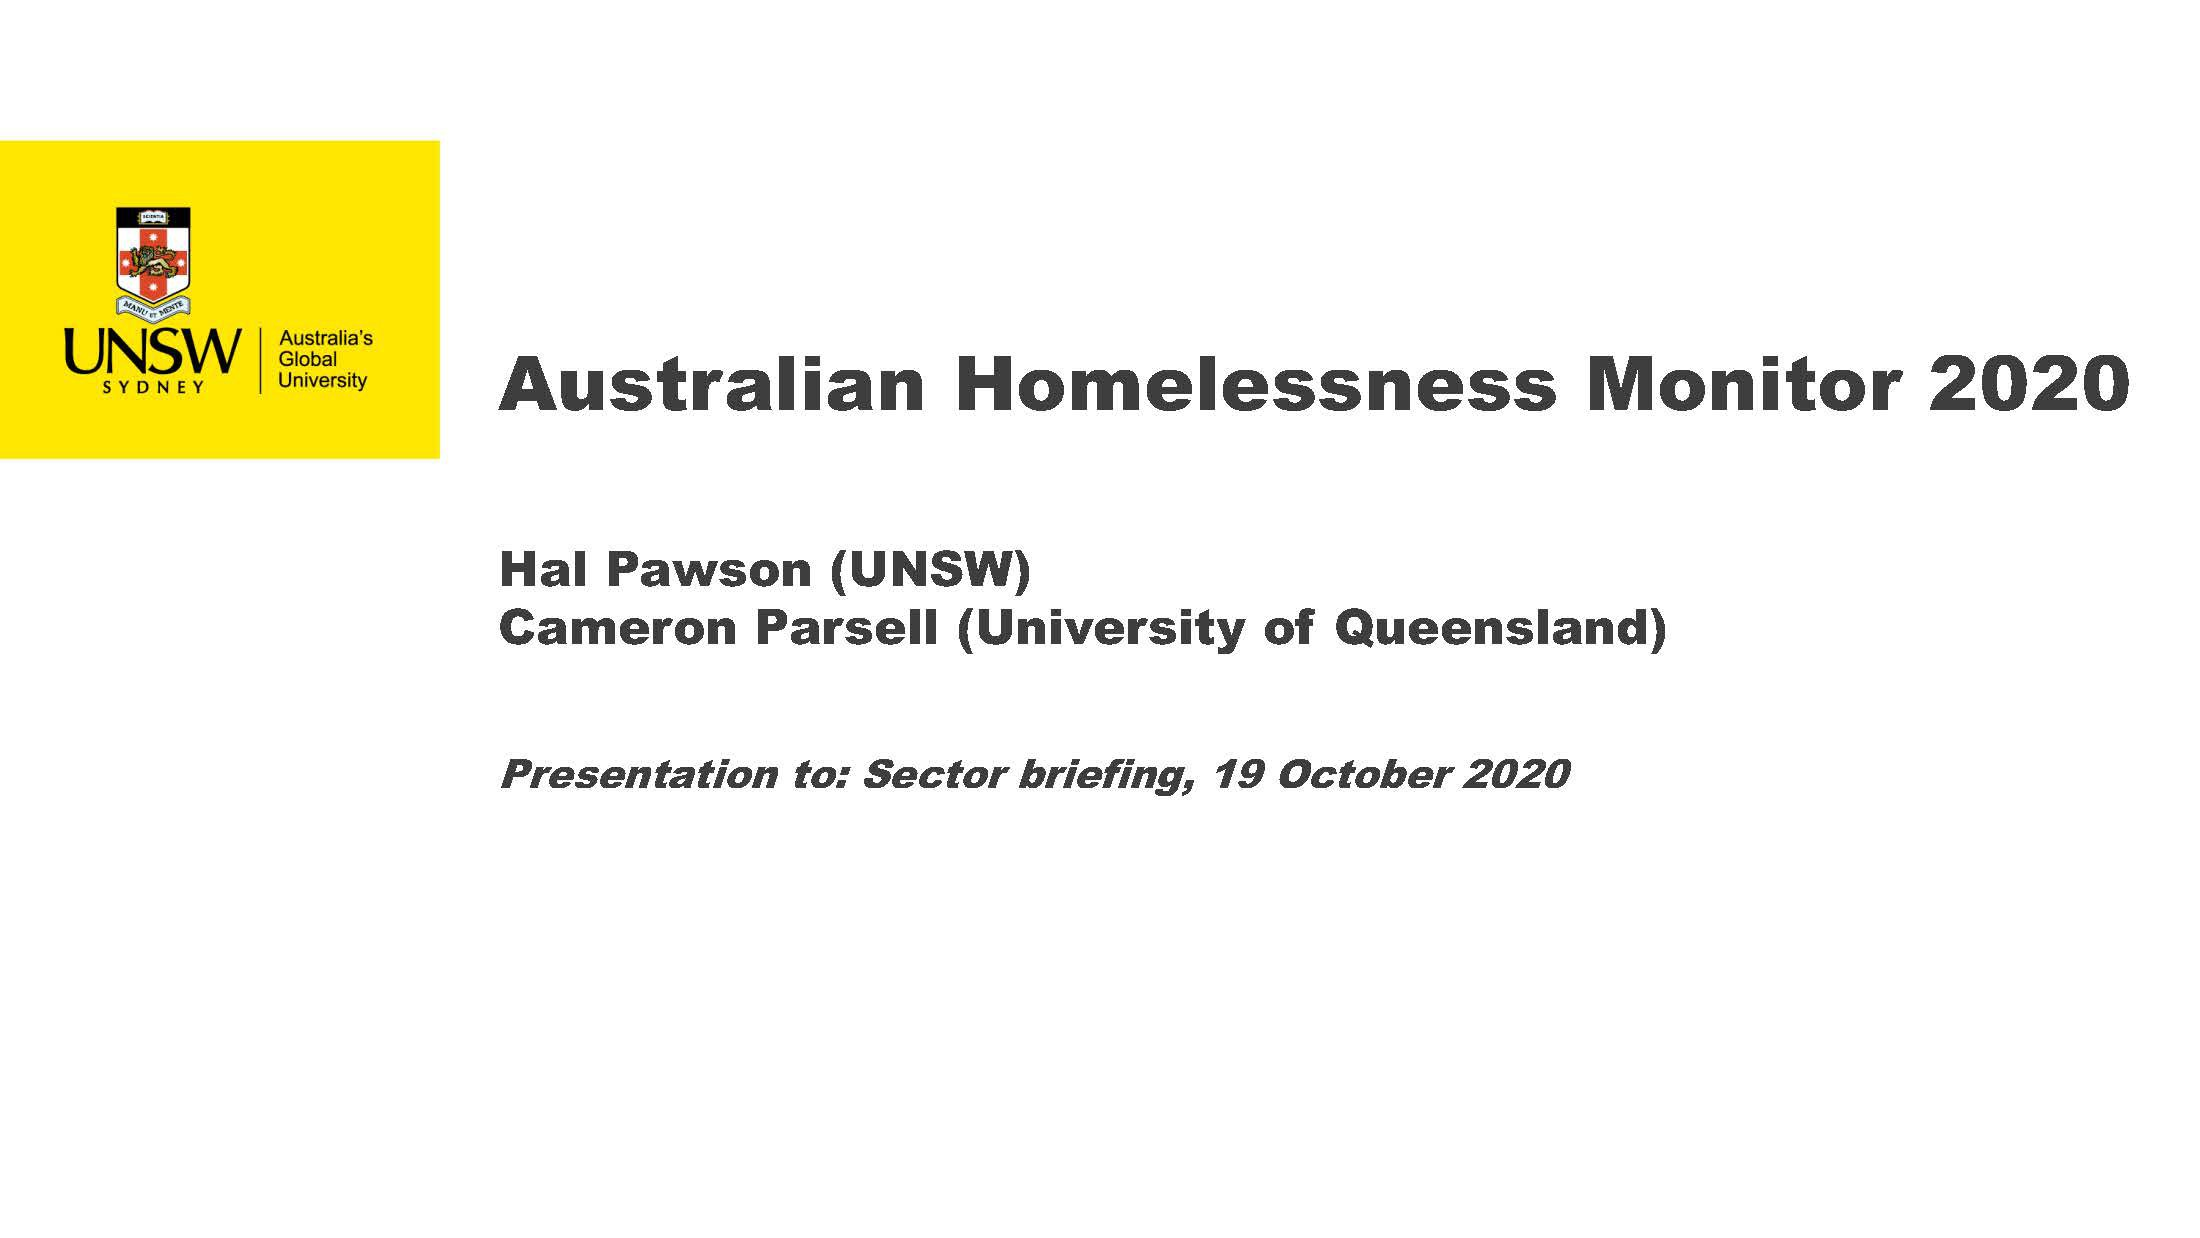 https://cityfutures.be.unsw.edu.au/media/images/Pages_from_AHM_2020_presentation_v4.original.jpg